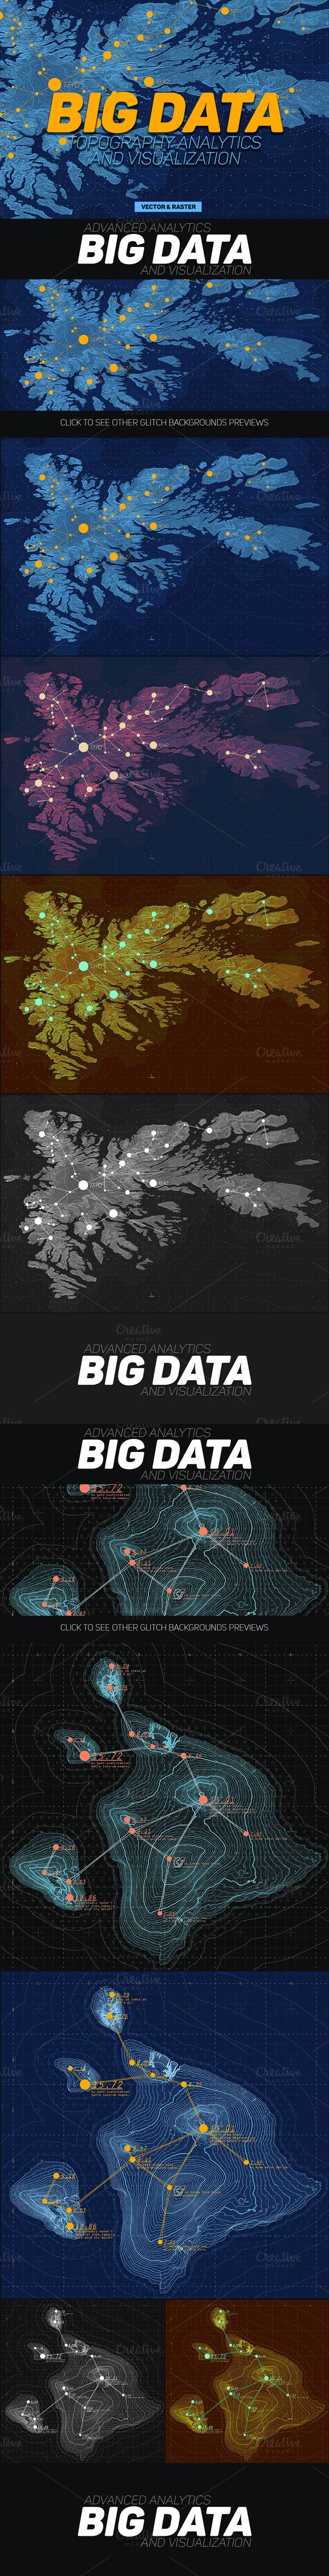 Big Data Maps Backgrounds. Graphic Design Infographics. $15.00